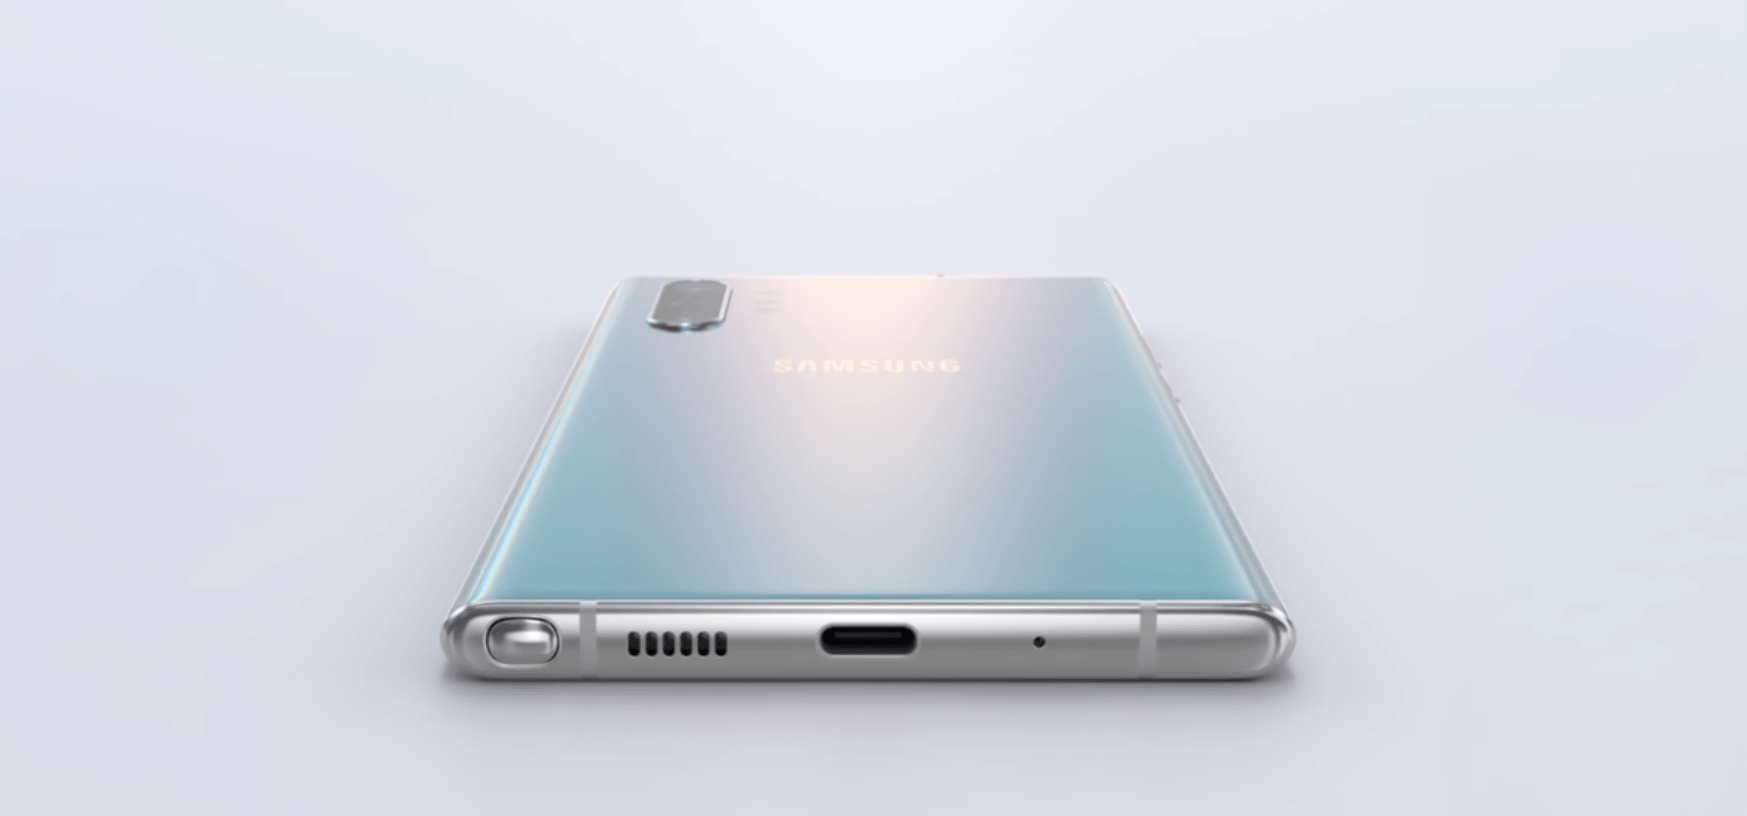 Galaxy Note 20 specs, features, price, release date